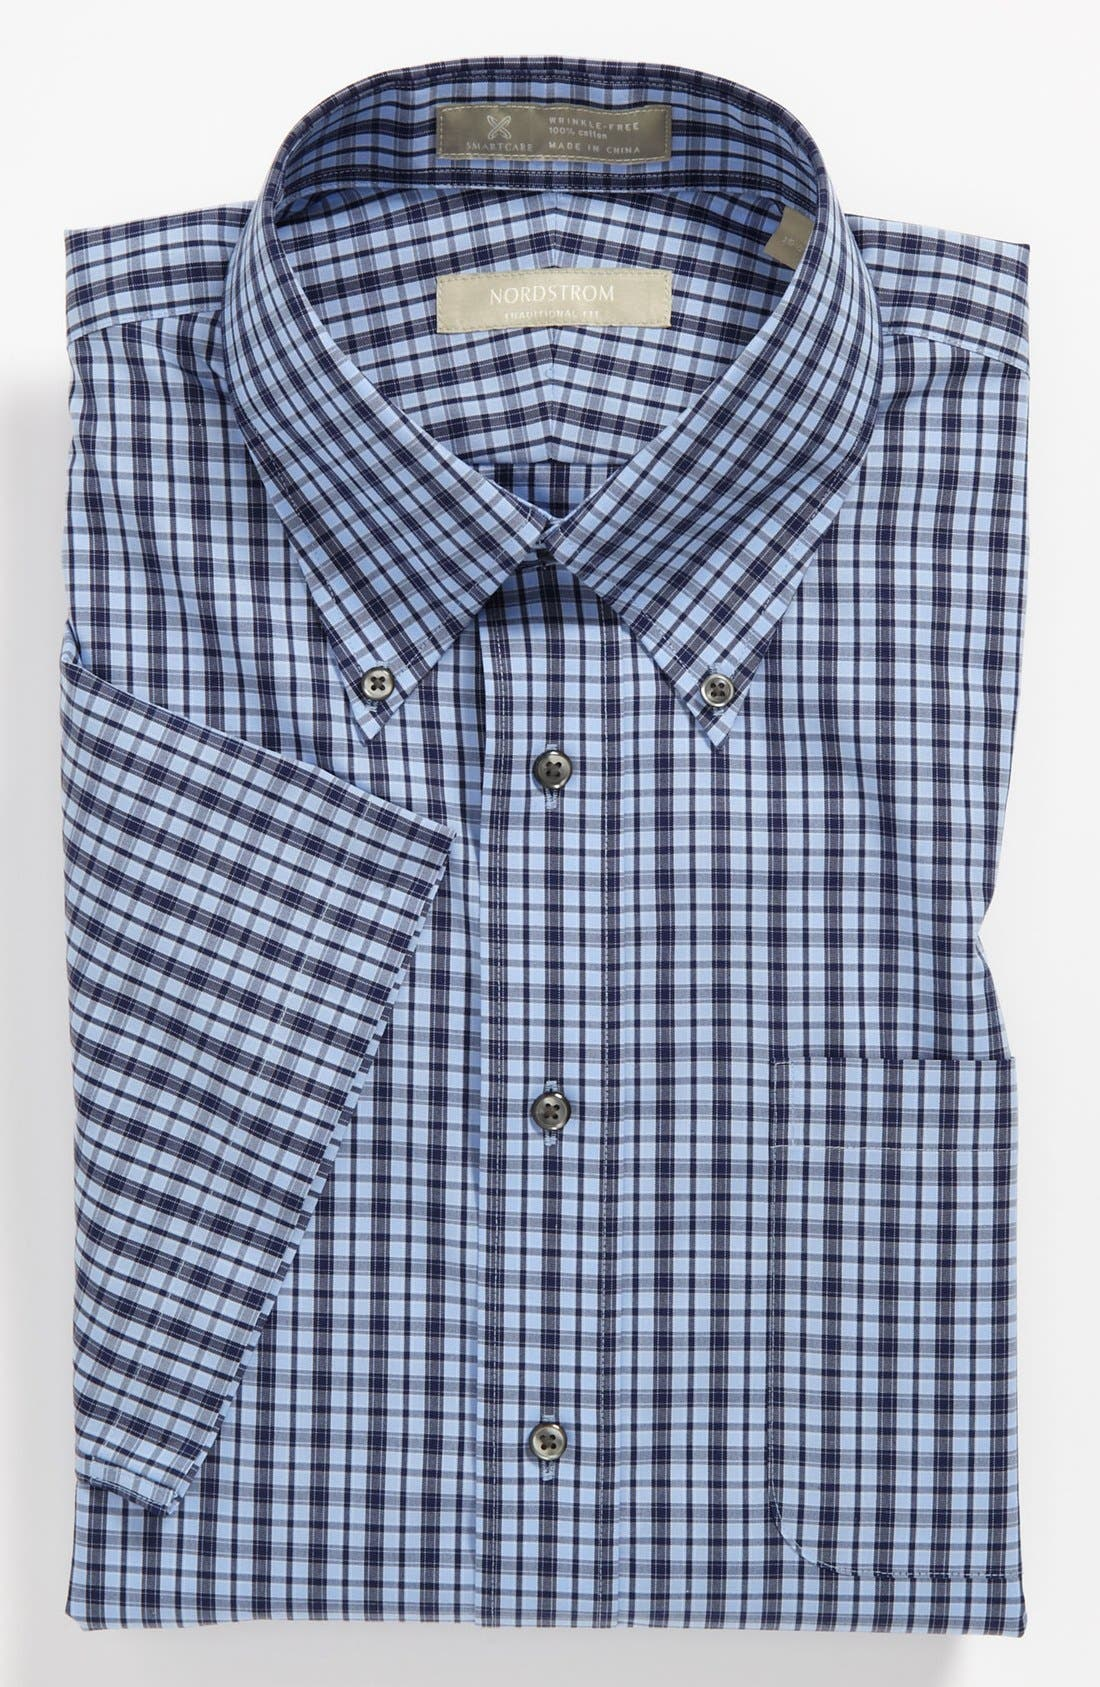 Main Image - Nordstrom Smartcare™ Wrinkle Free Traditional Fit Short Sleeve Dress Shirt